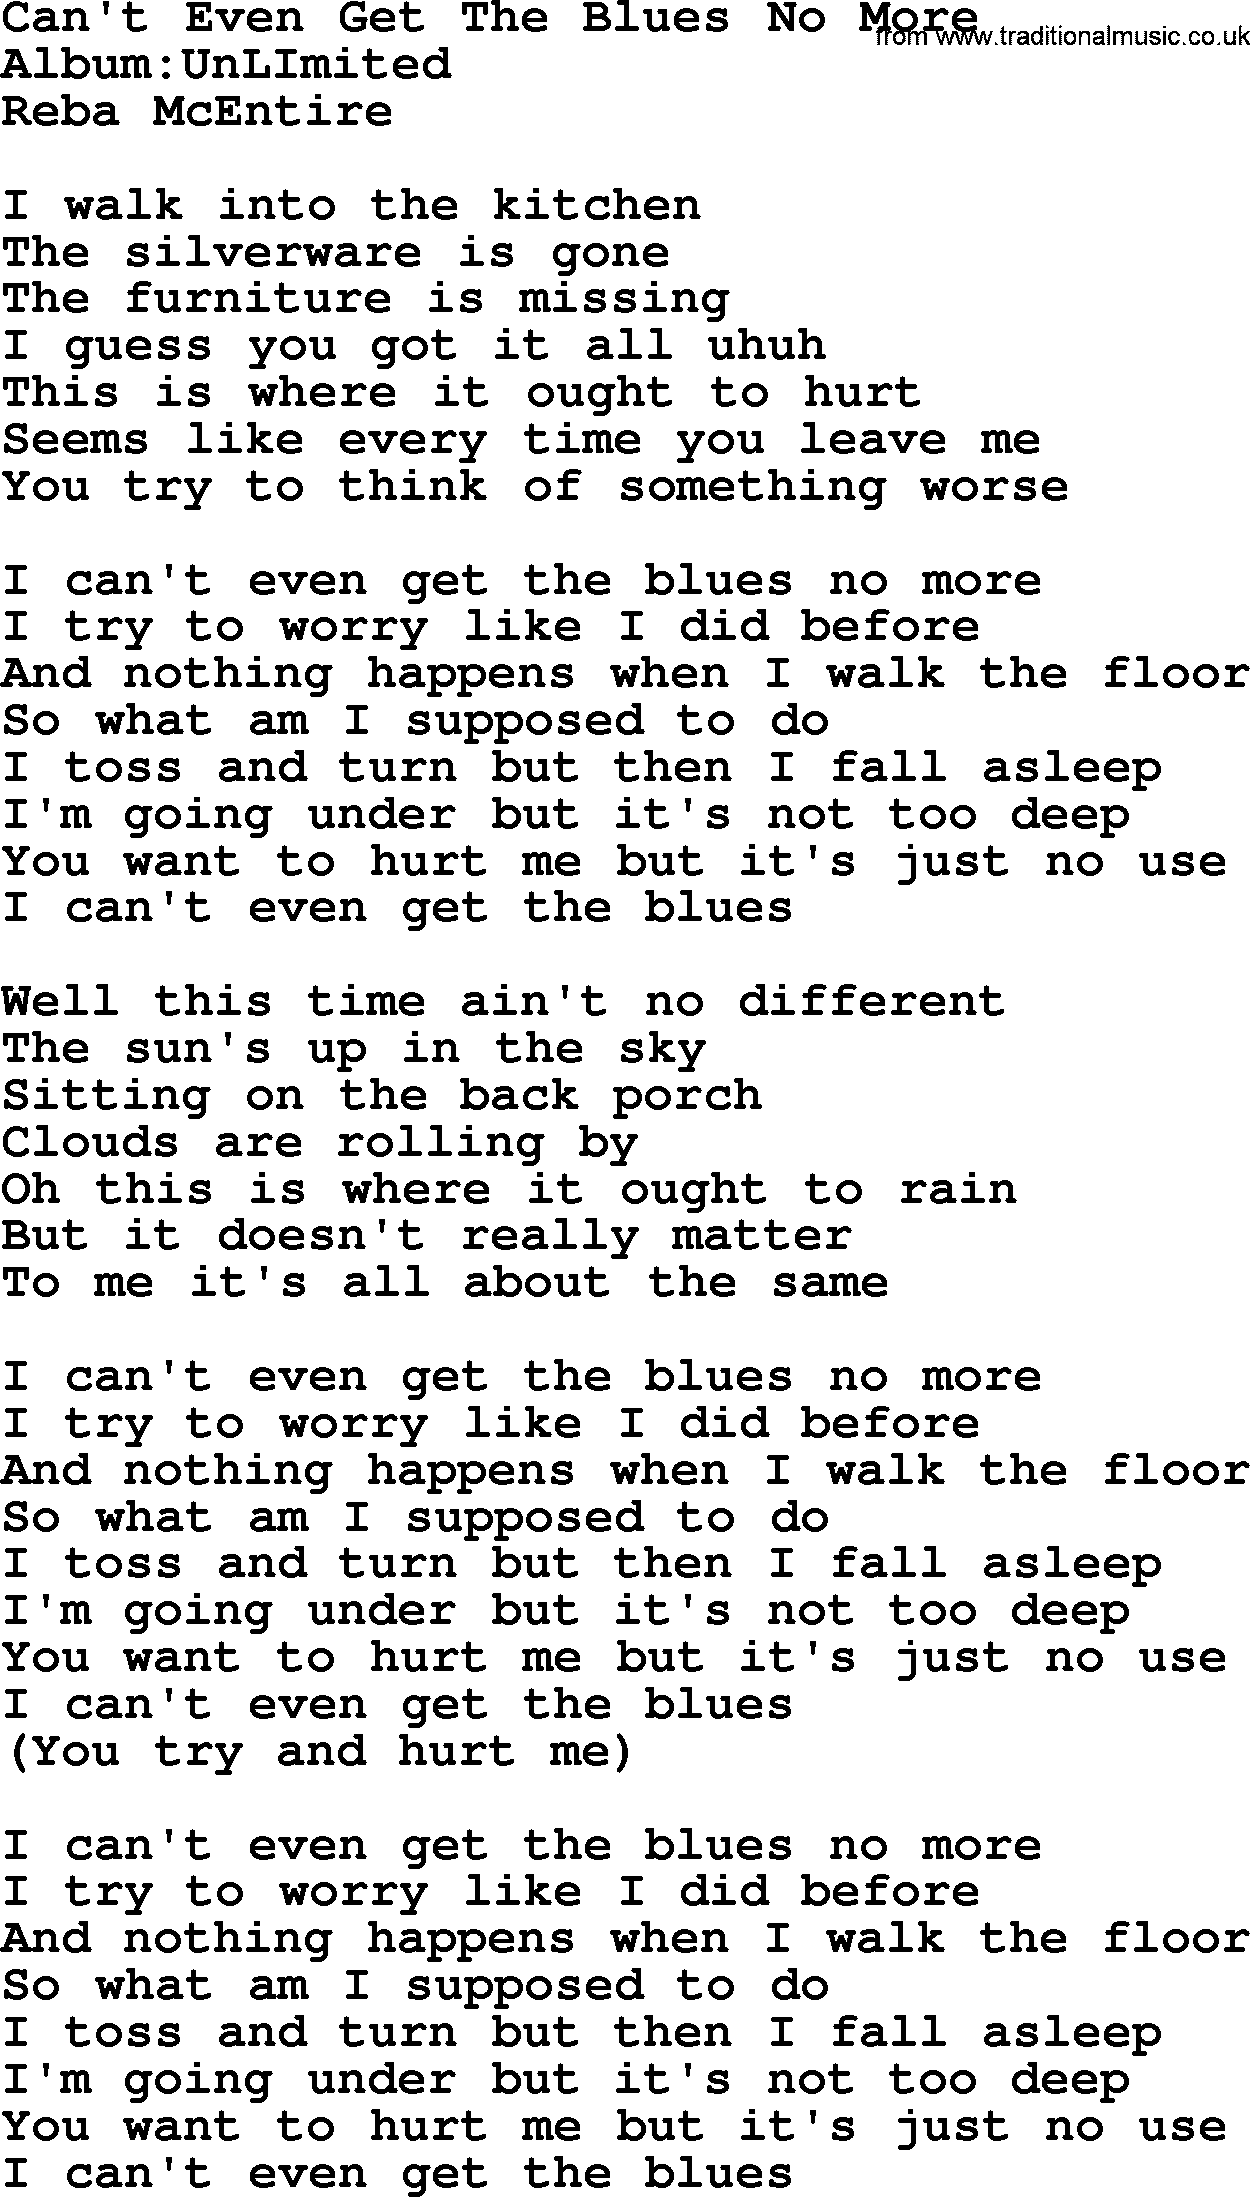 Cant Even Get The Blues No More By Reba Mcentire Lyrics